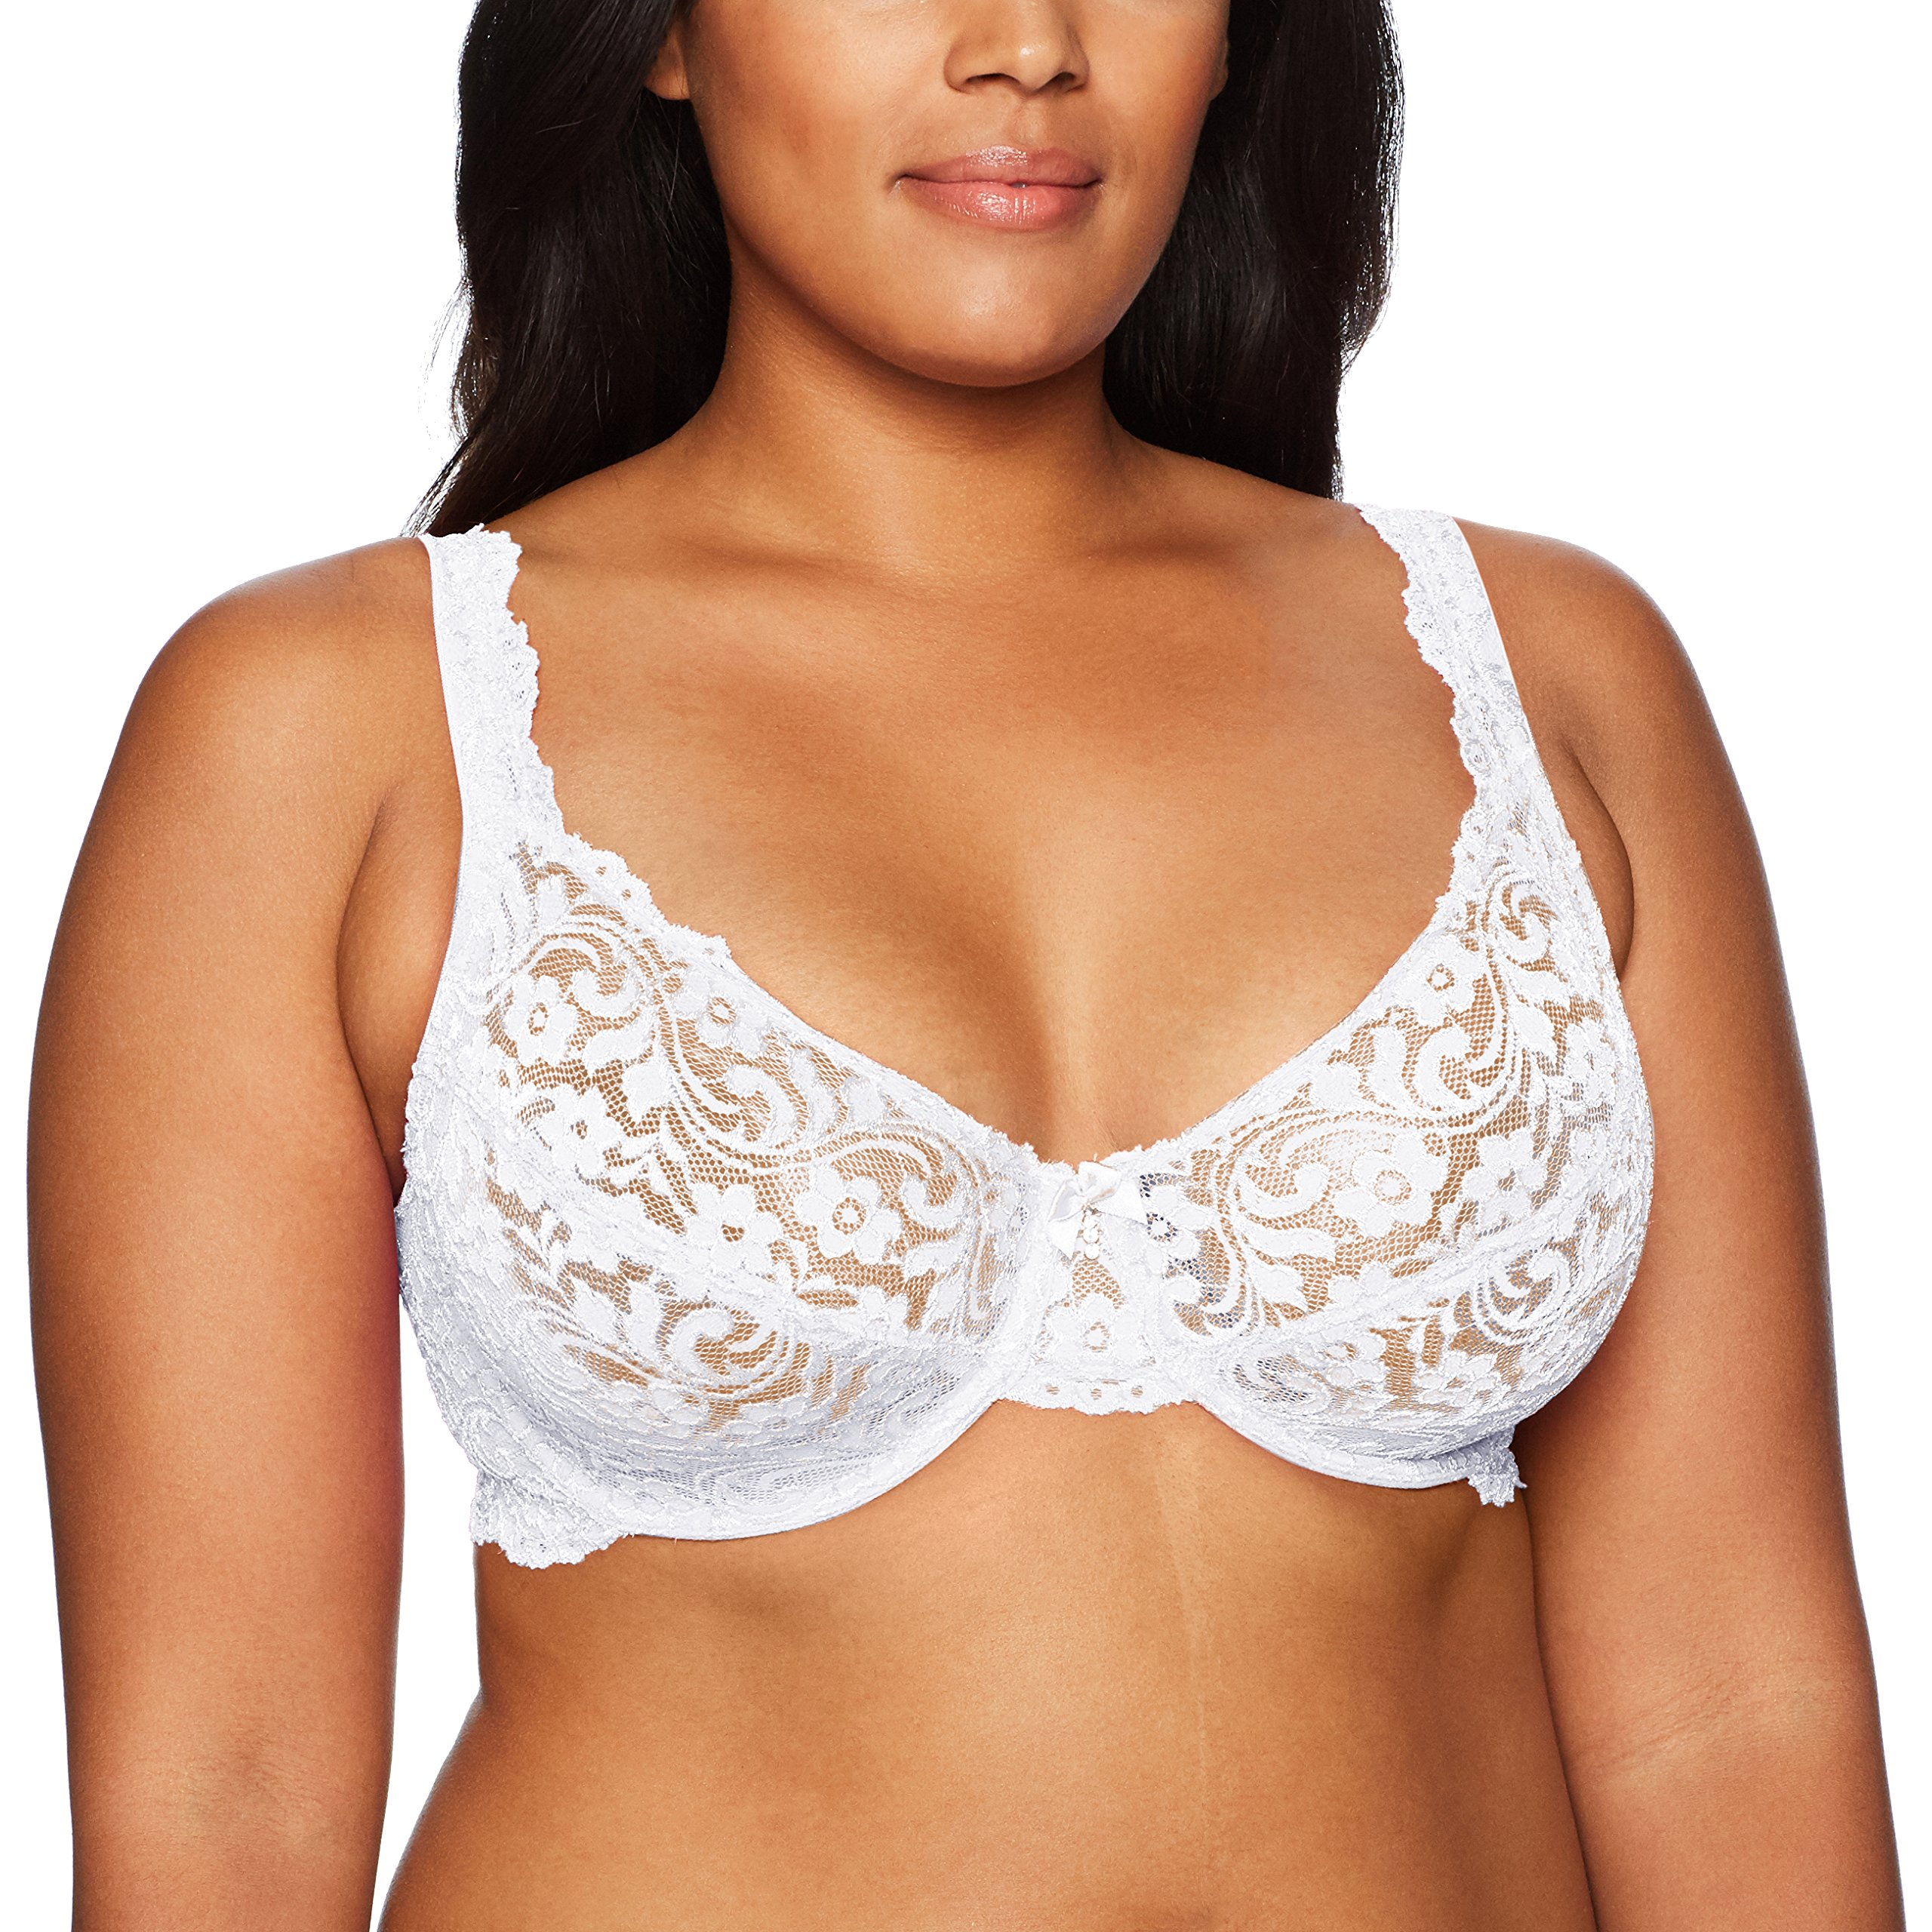 Smart+Sexy Women's Plus Size Curvy Signature Lace Unlined Underwire Bra with Added Support, White, 46DD